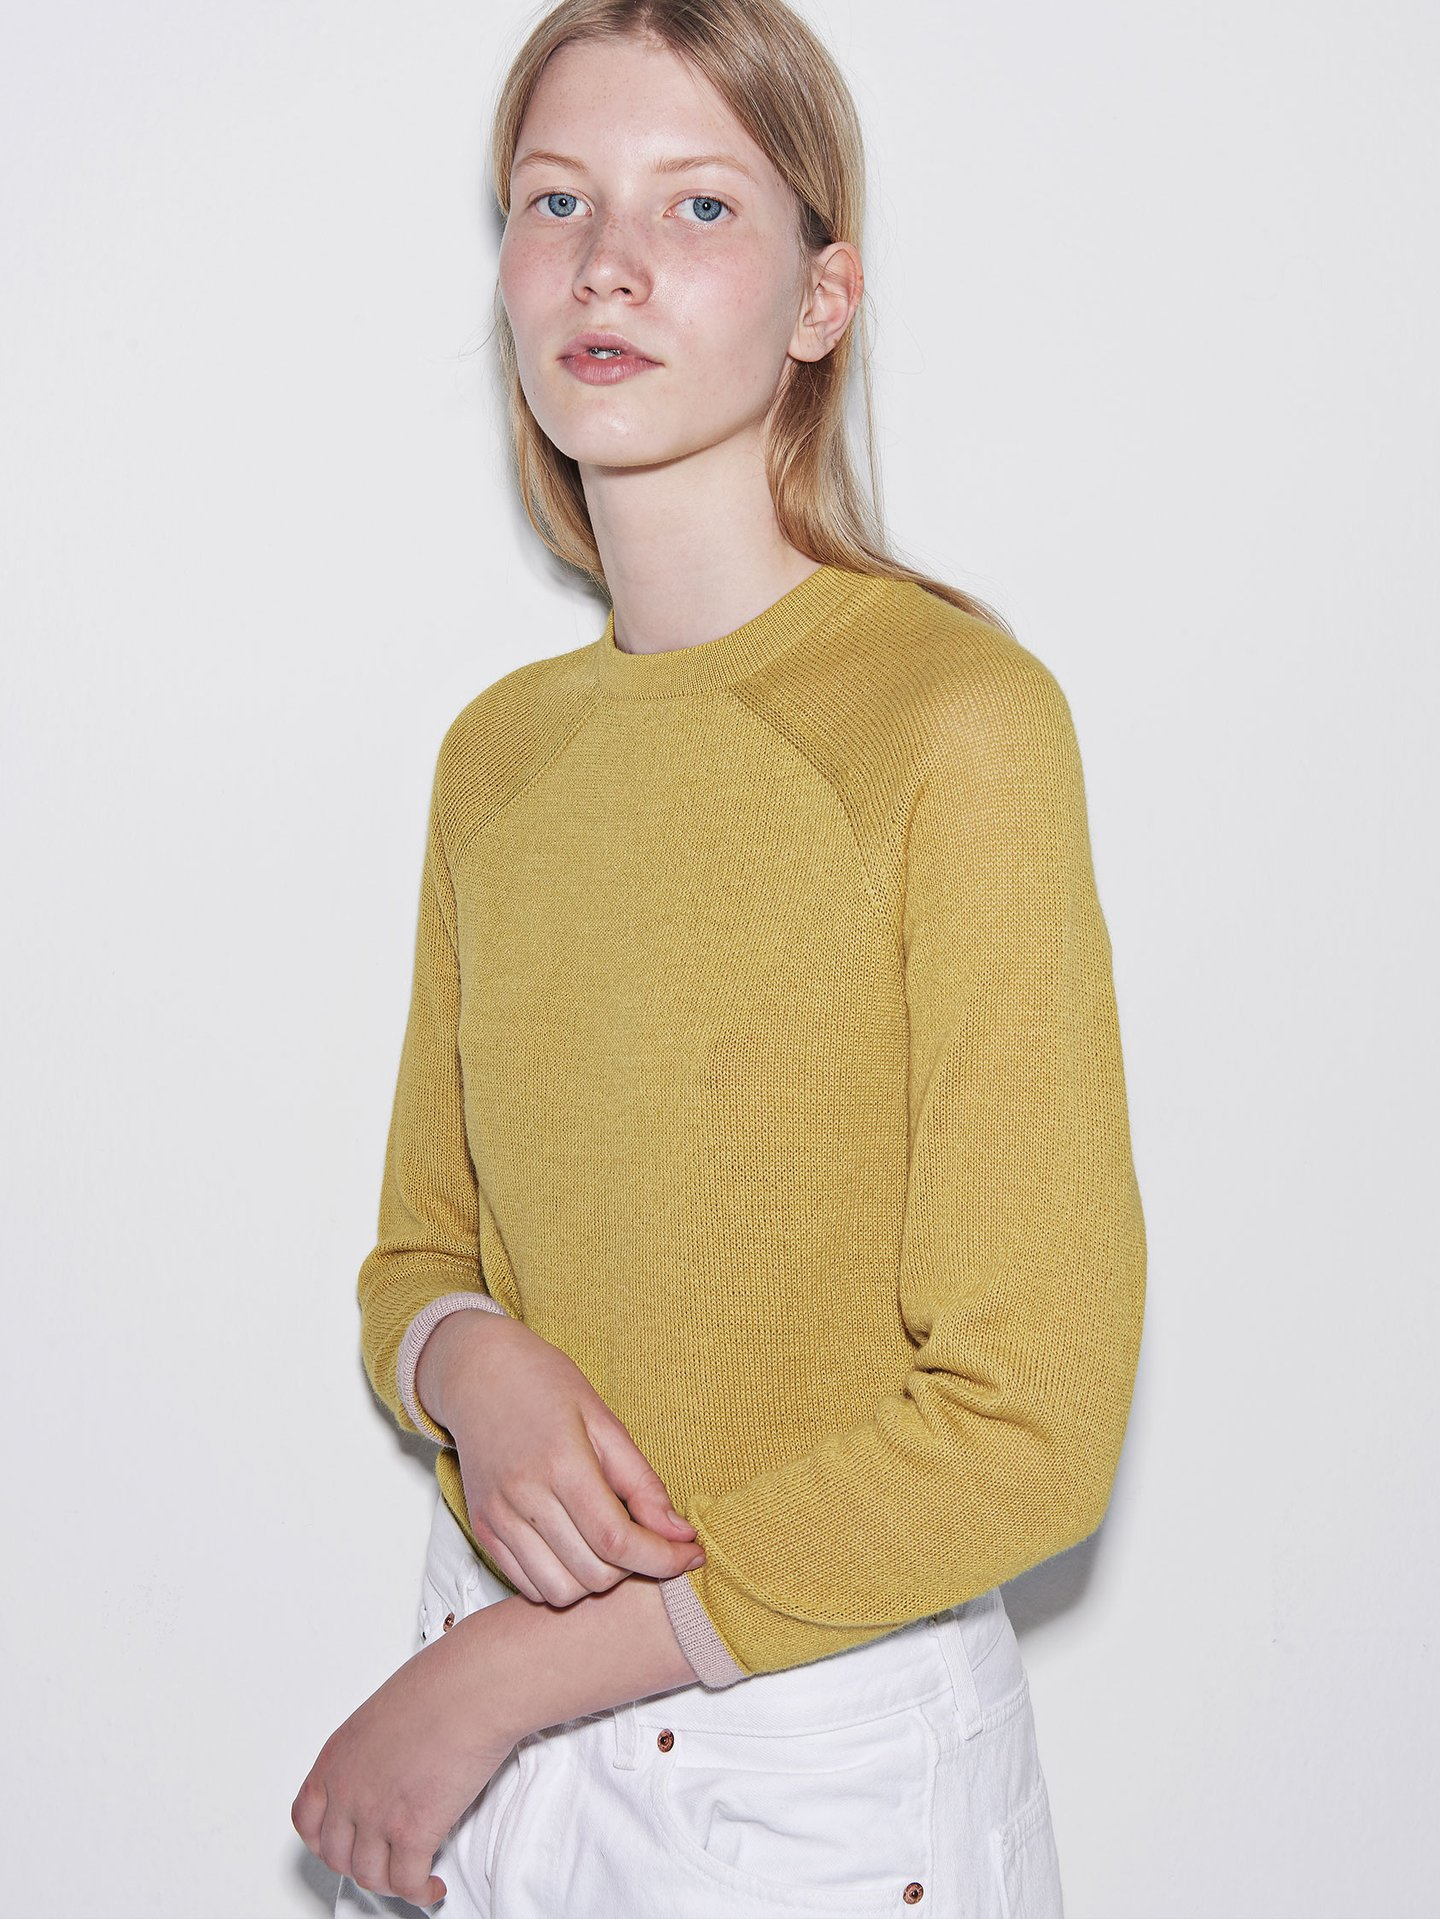 Yellow baby alpaca sweater - made in prison by Carcel Clothing